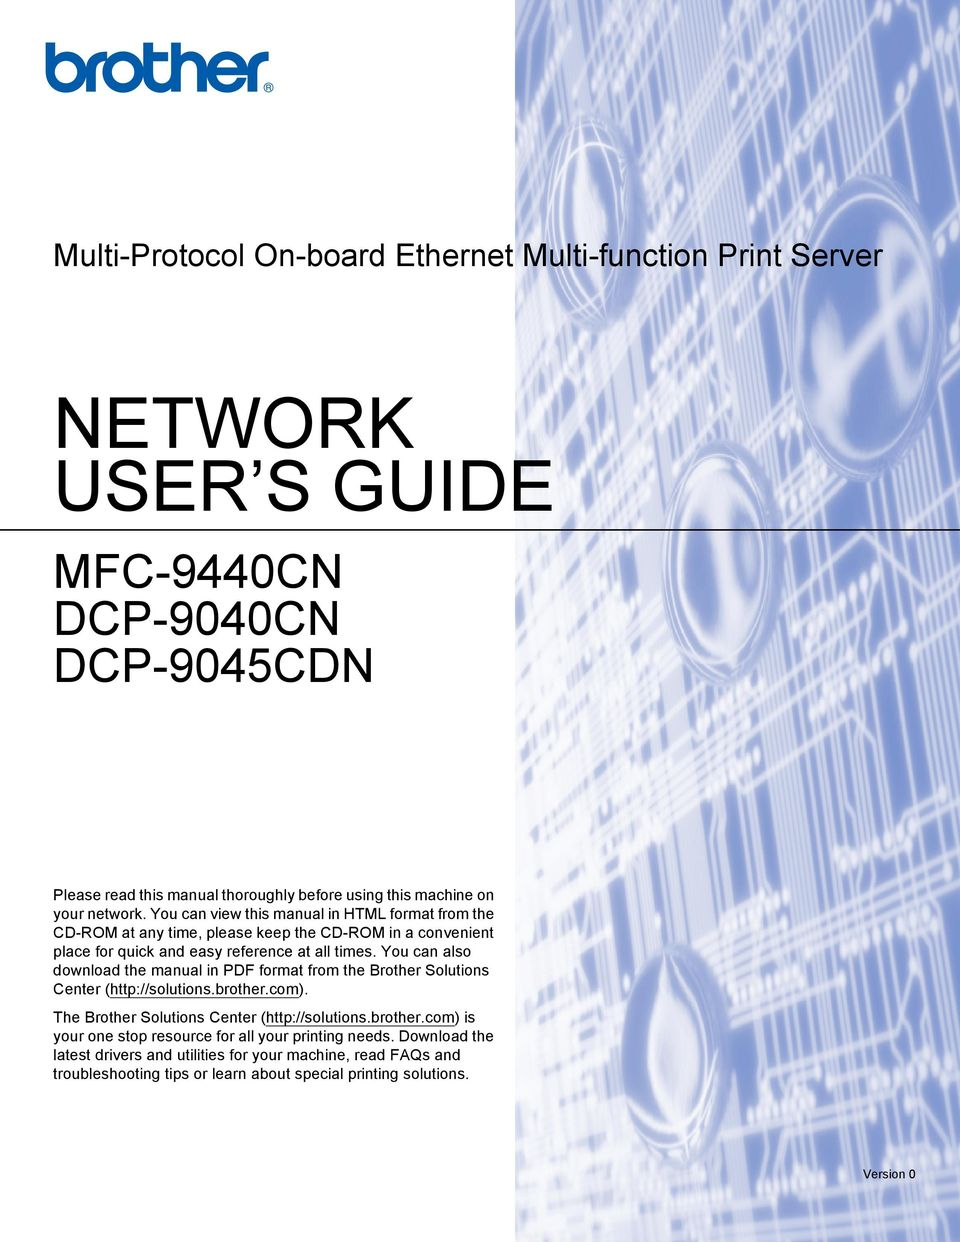 Brother international dcp-9040cn manual.